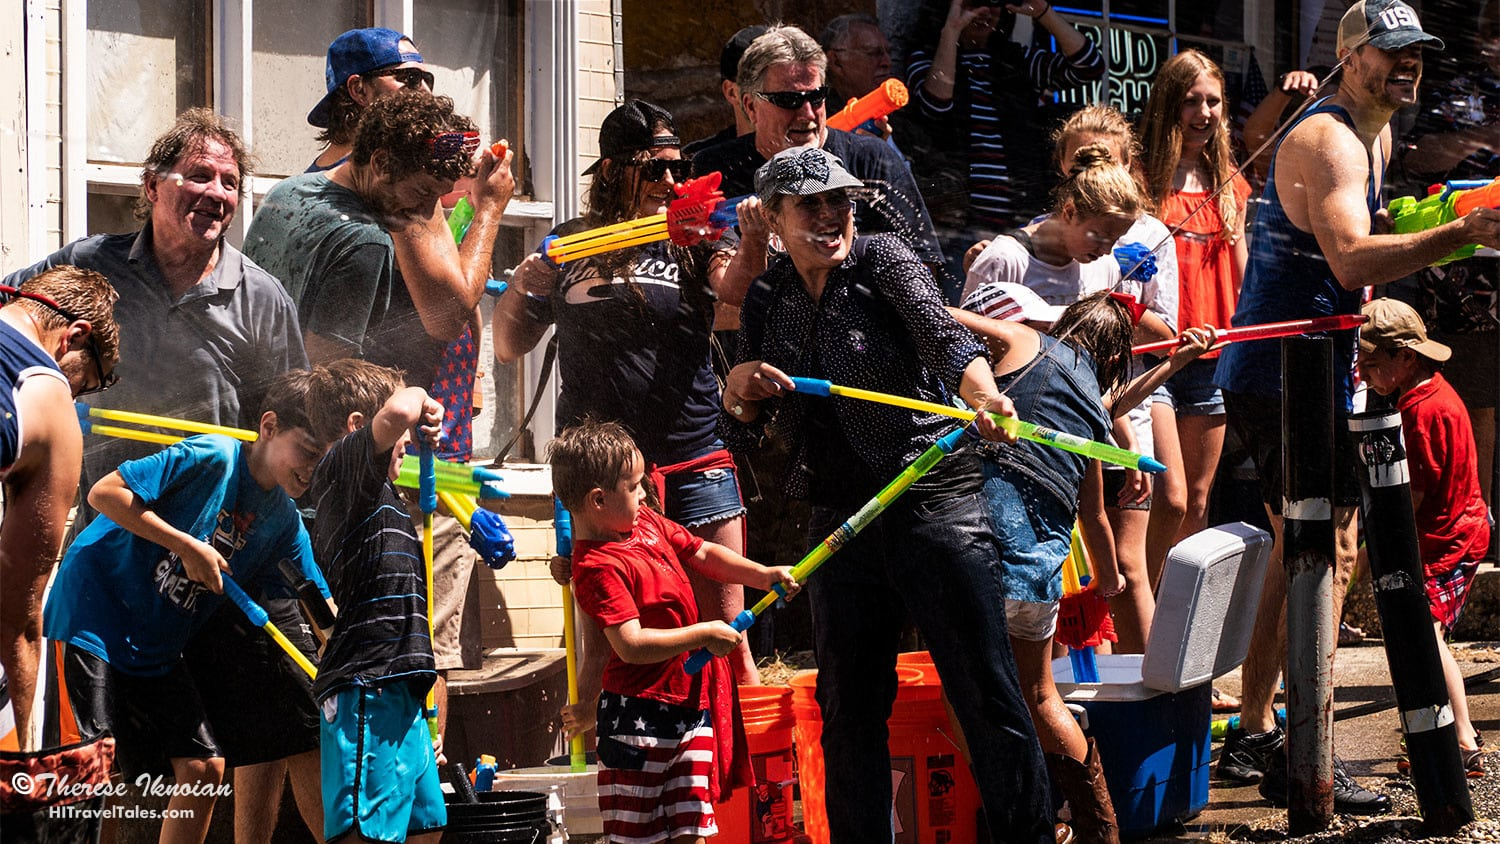 Between water fight battles at the Dutch Flat 4th of July parade, it's important to refill your weapons quickly.